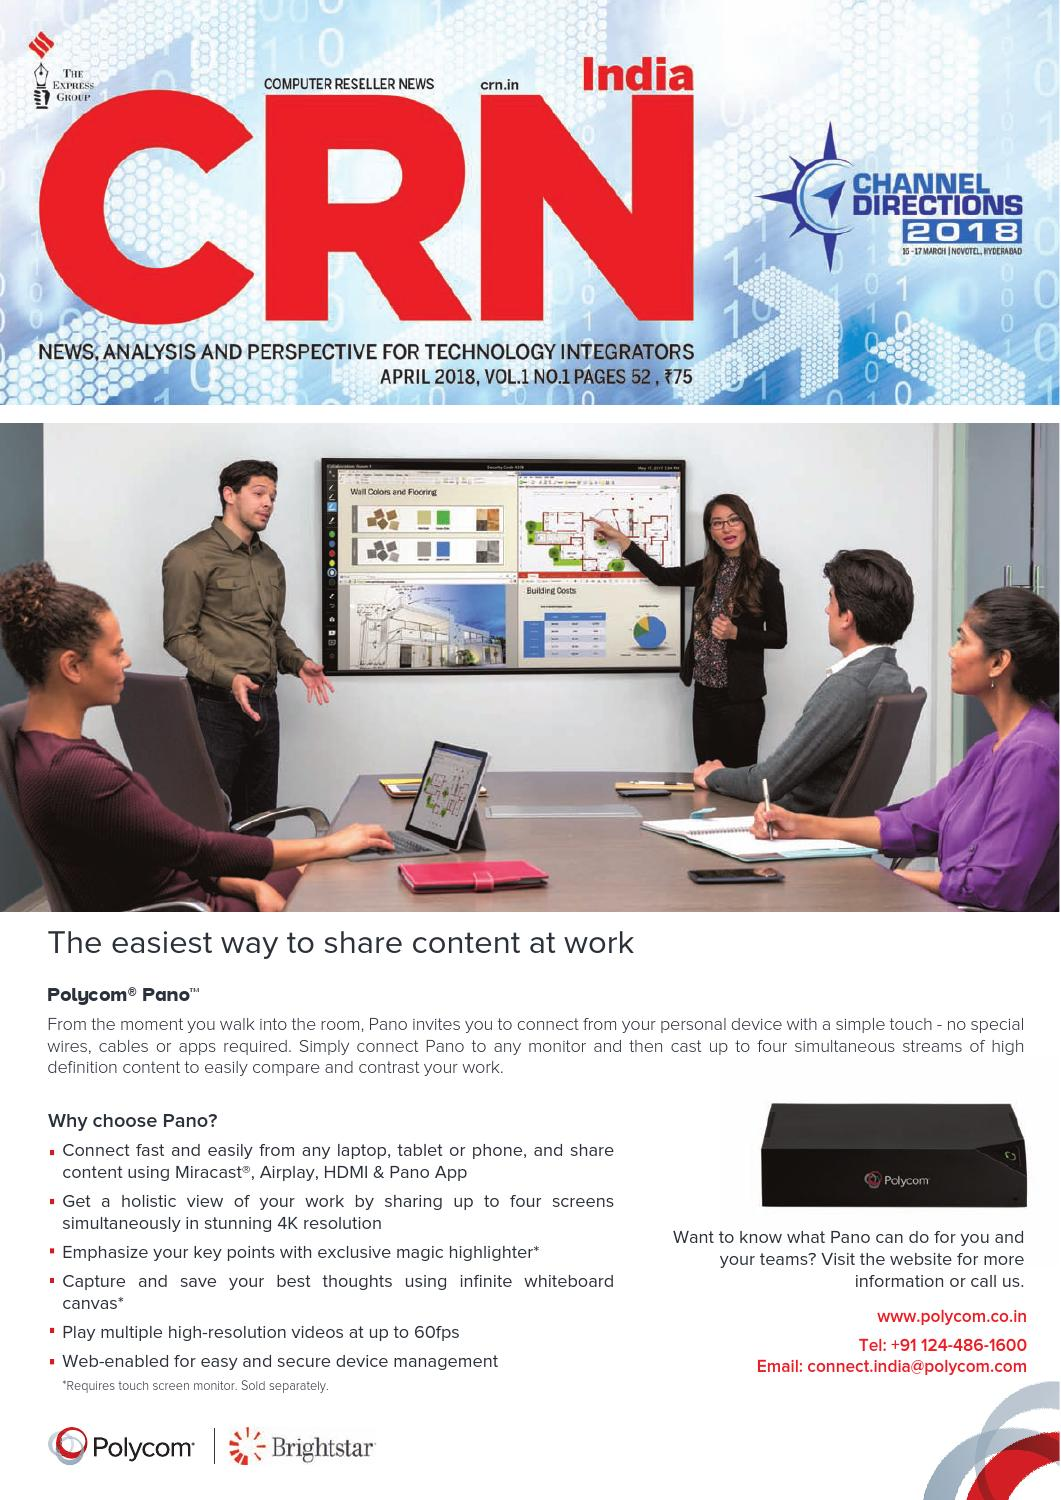 CRN India April 2018 (Vol 1, No 1) by Indian Express - issuu